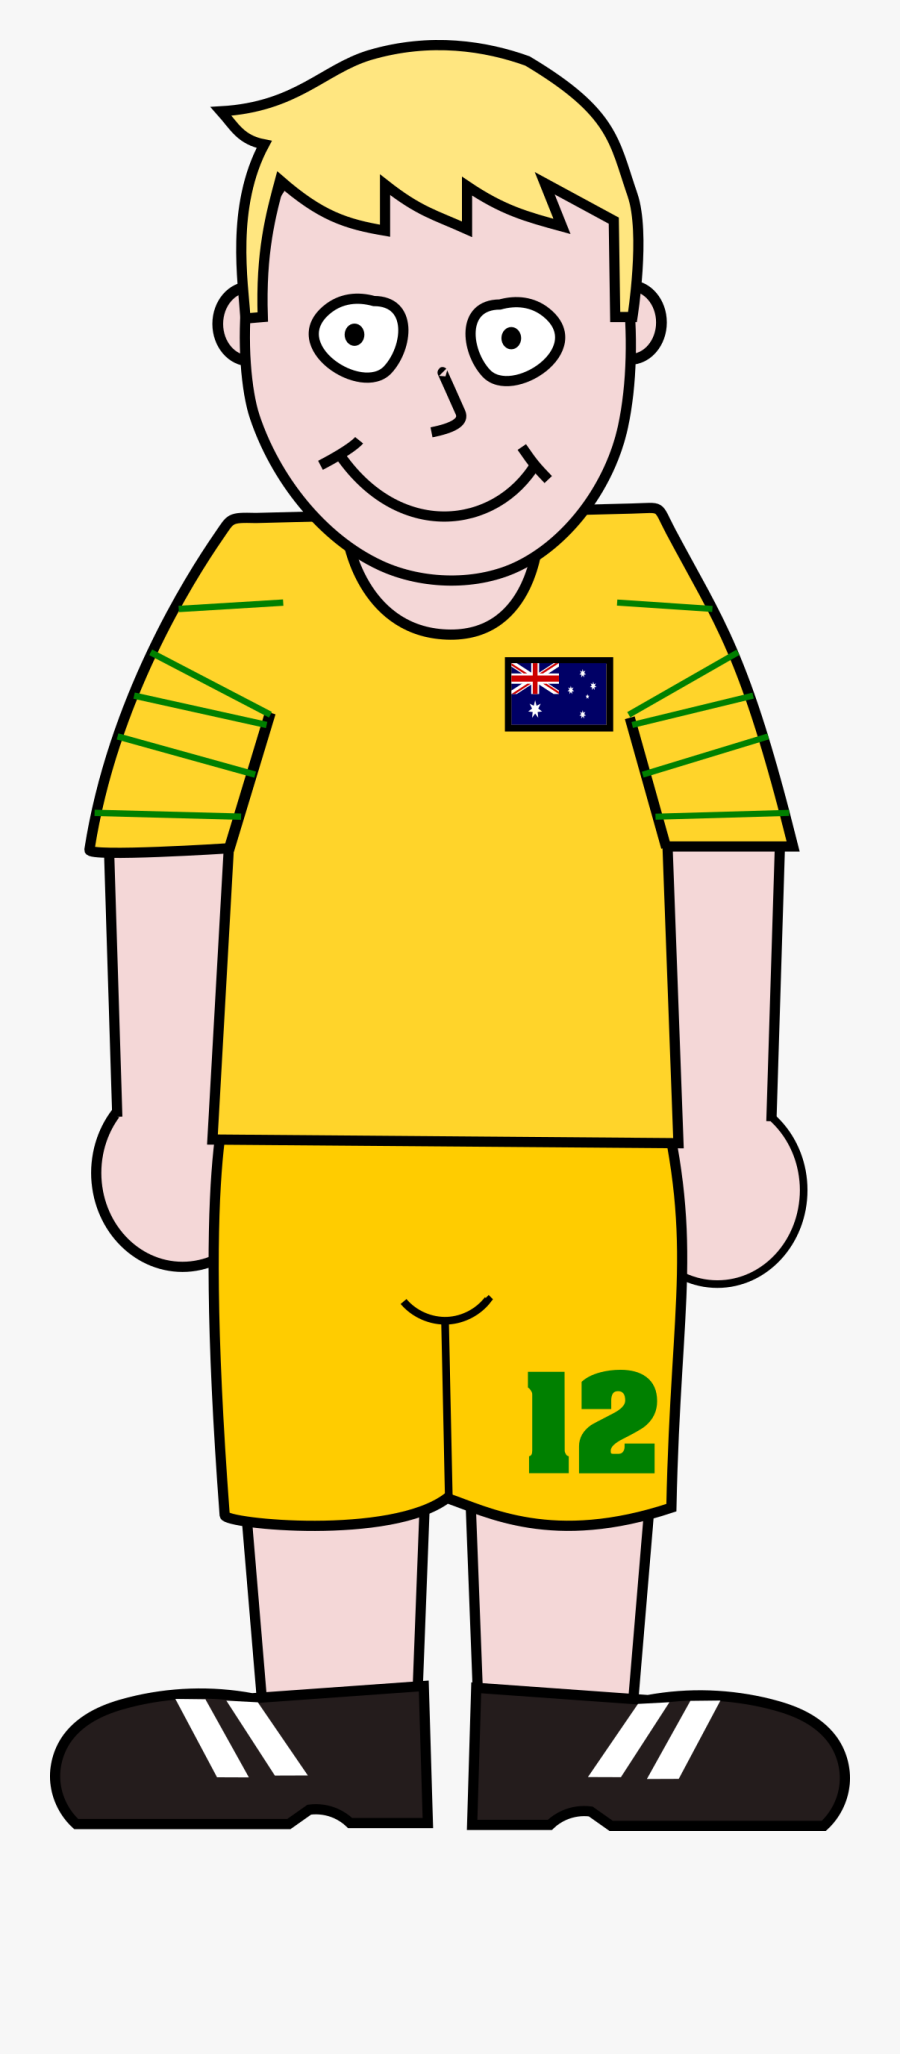 World Cup Soccer Player Clipart Png Transparent Png - Cartoon Soccer Player Standing Clipart, Transparent Clipart